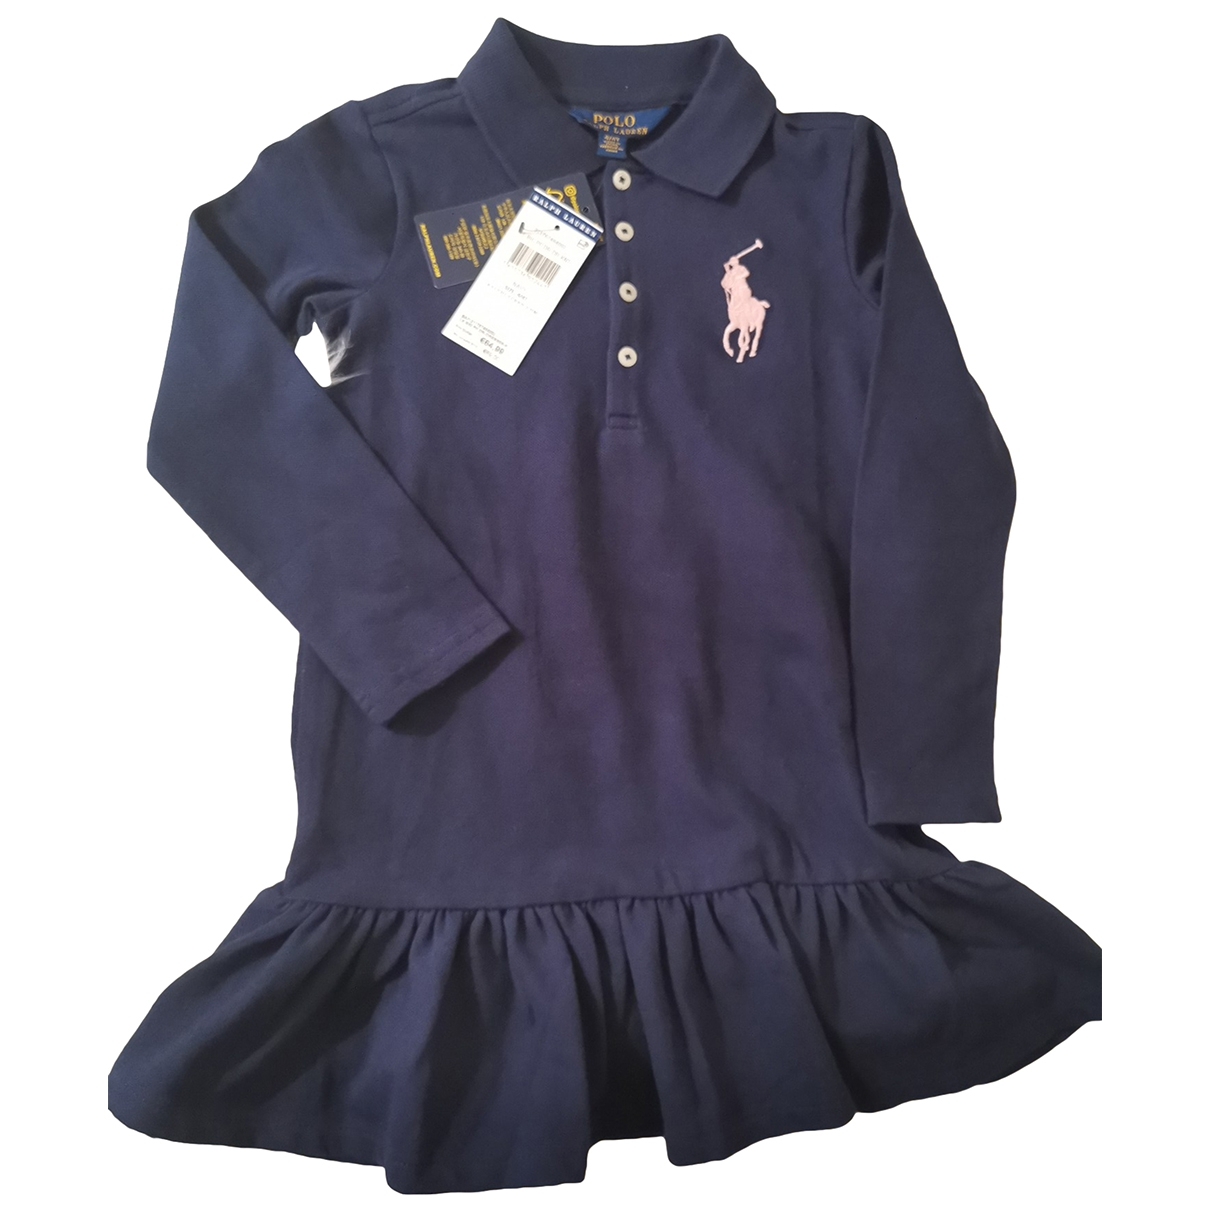 Polo Ralph Lauren \N Navy Cotton dress for Kids 5 years - up to 108cm FR